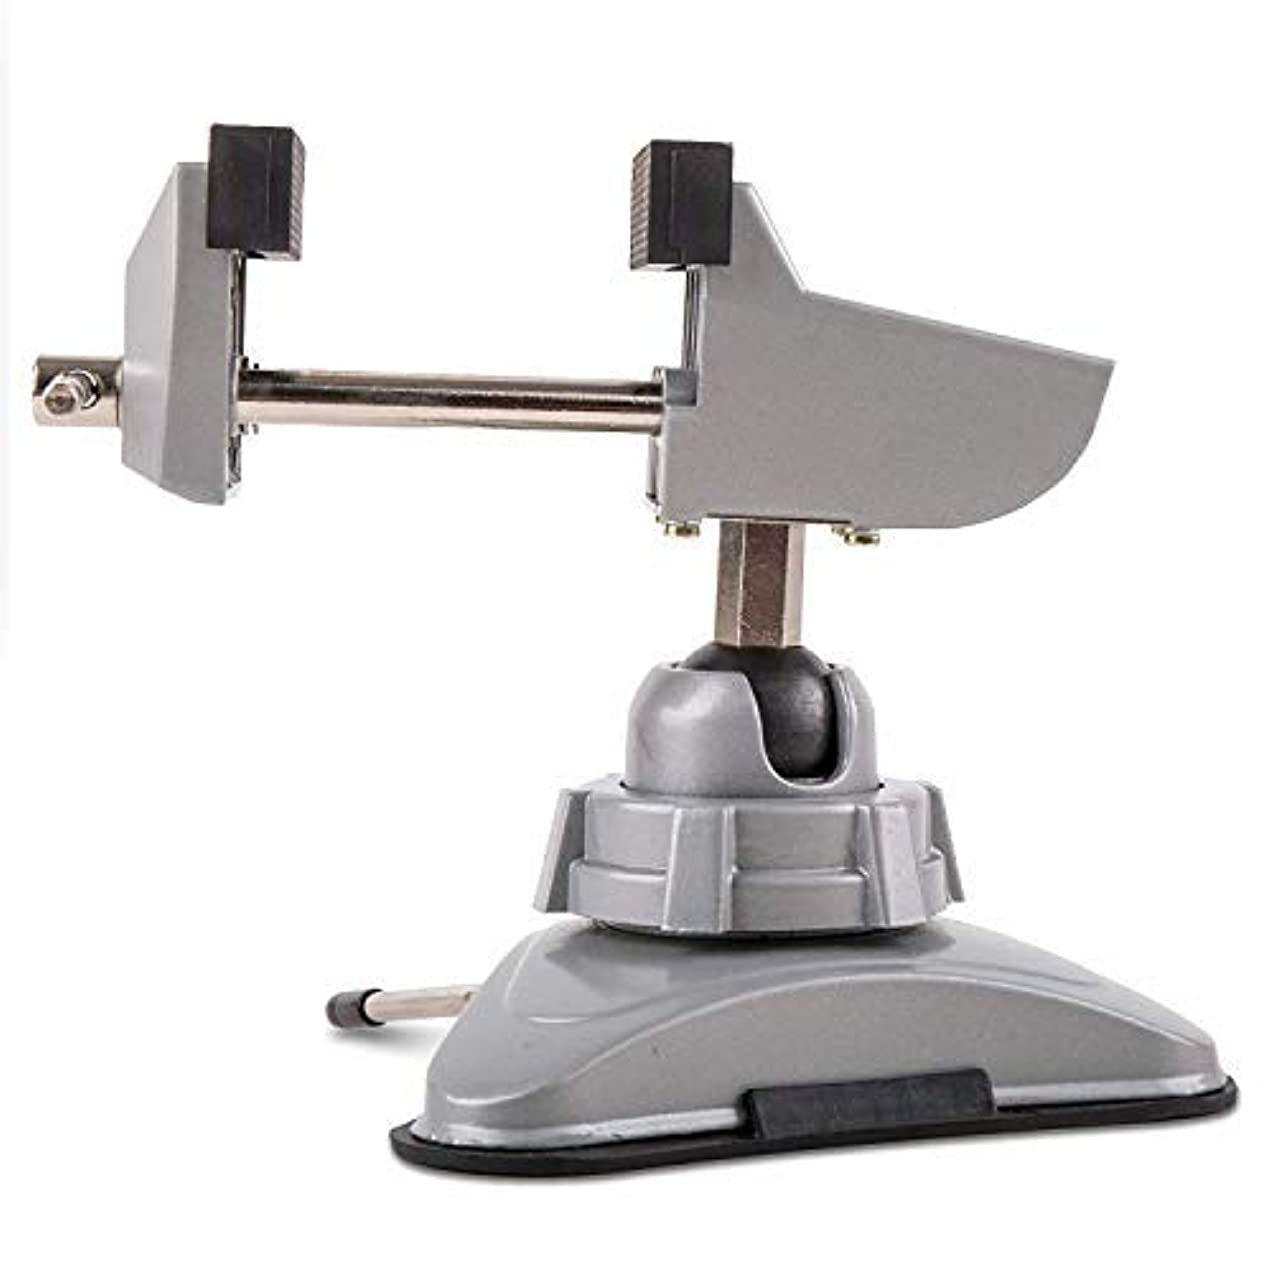 存在する彼のモジュールJOYABEST Hobby Mini Vice with 360°Swiveling Head Powerful Suction Base Mounting Mechanism Soft Jaws for Hobby, Craft, Model Building, Jewelry Making Metal Work Multi-Angle Table Vice (70mm Jaws) [並行輸入品]